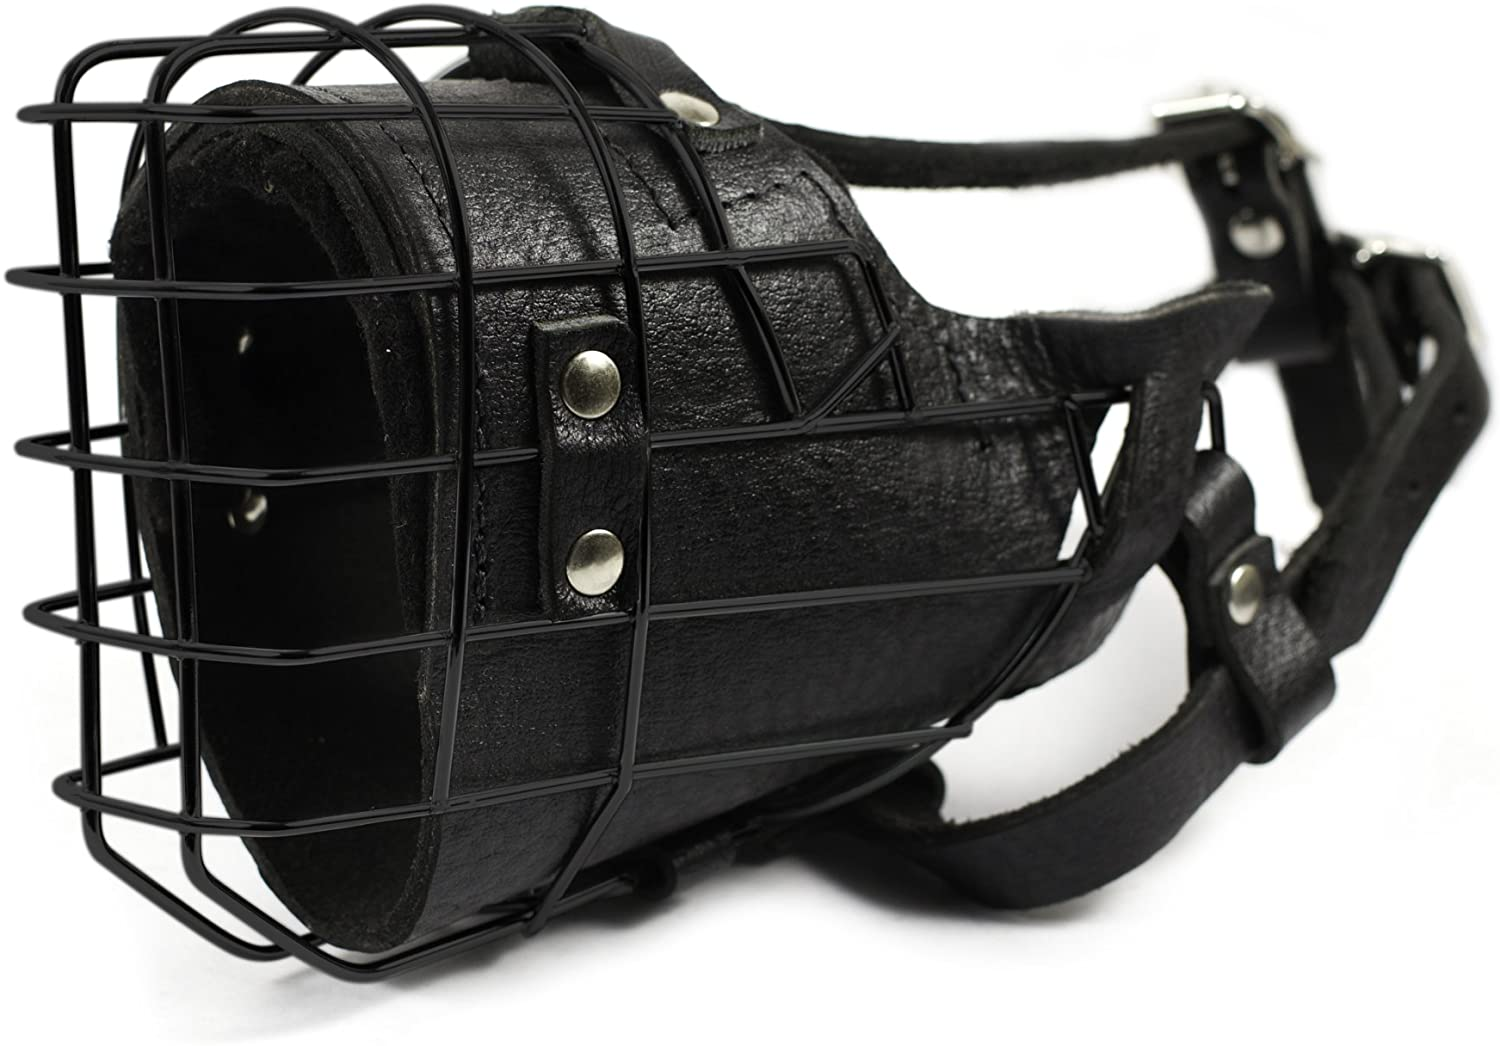 Dean and Tyler DT Freedom Winter Black Padded Muzzle, Size No. 1 - German Shepherd Female